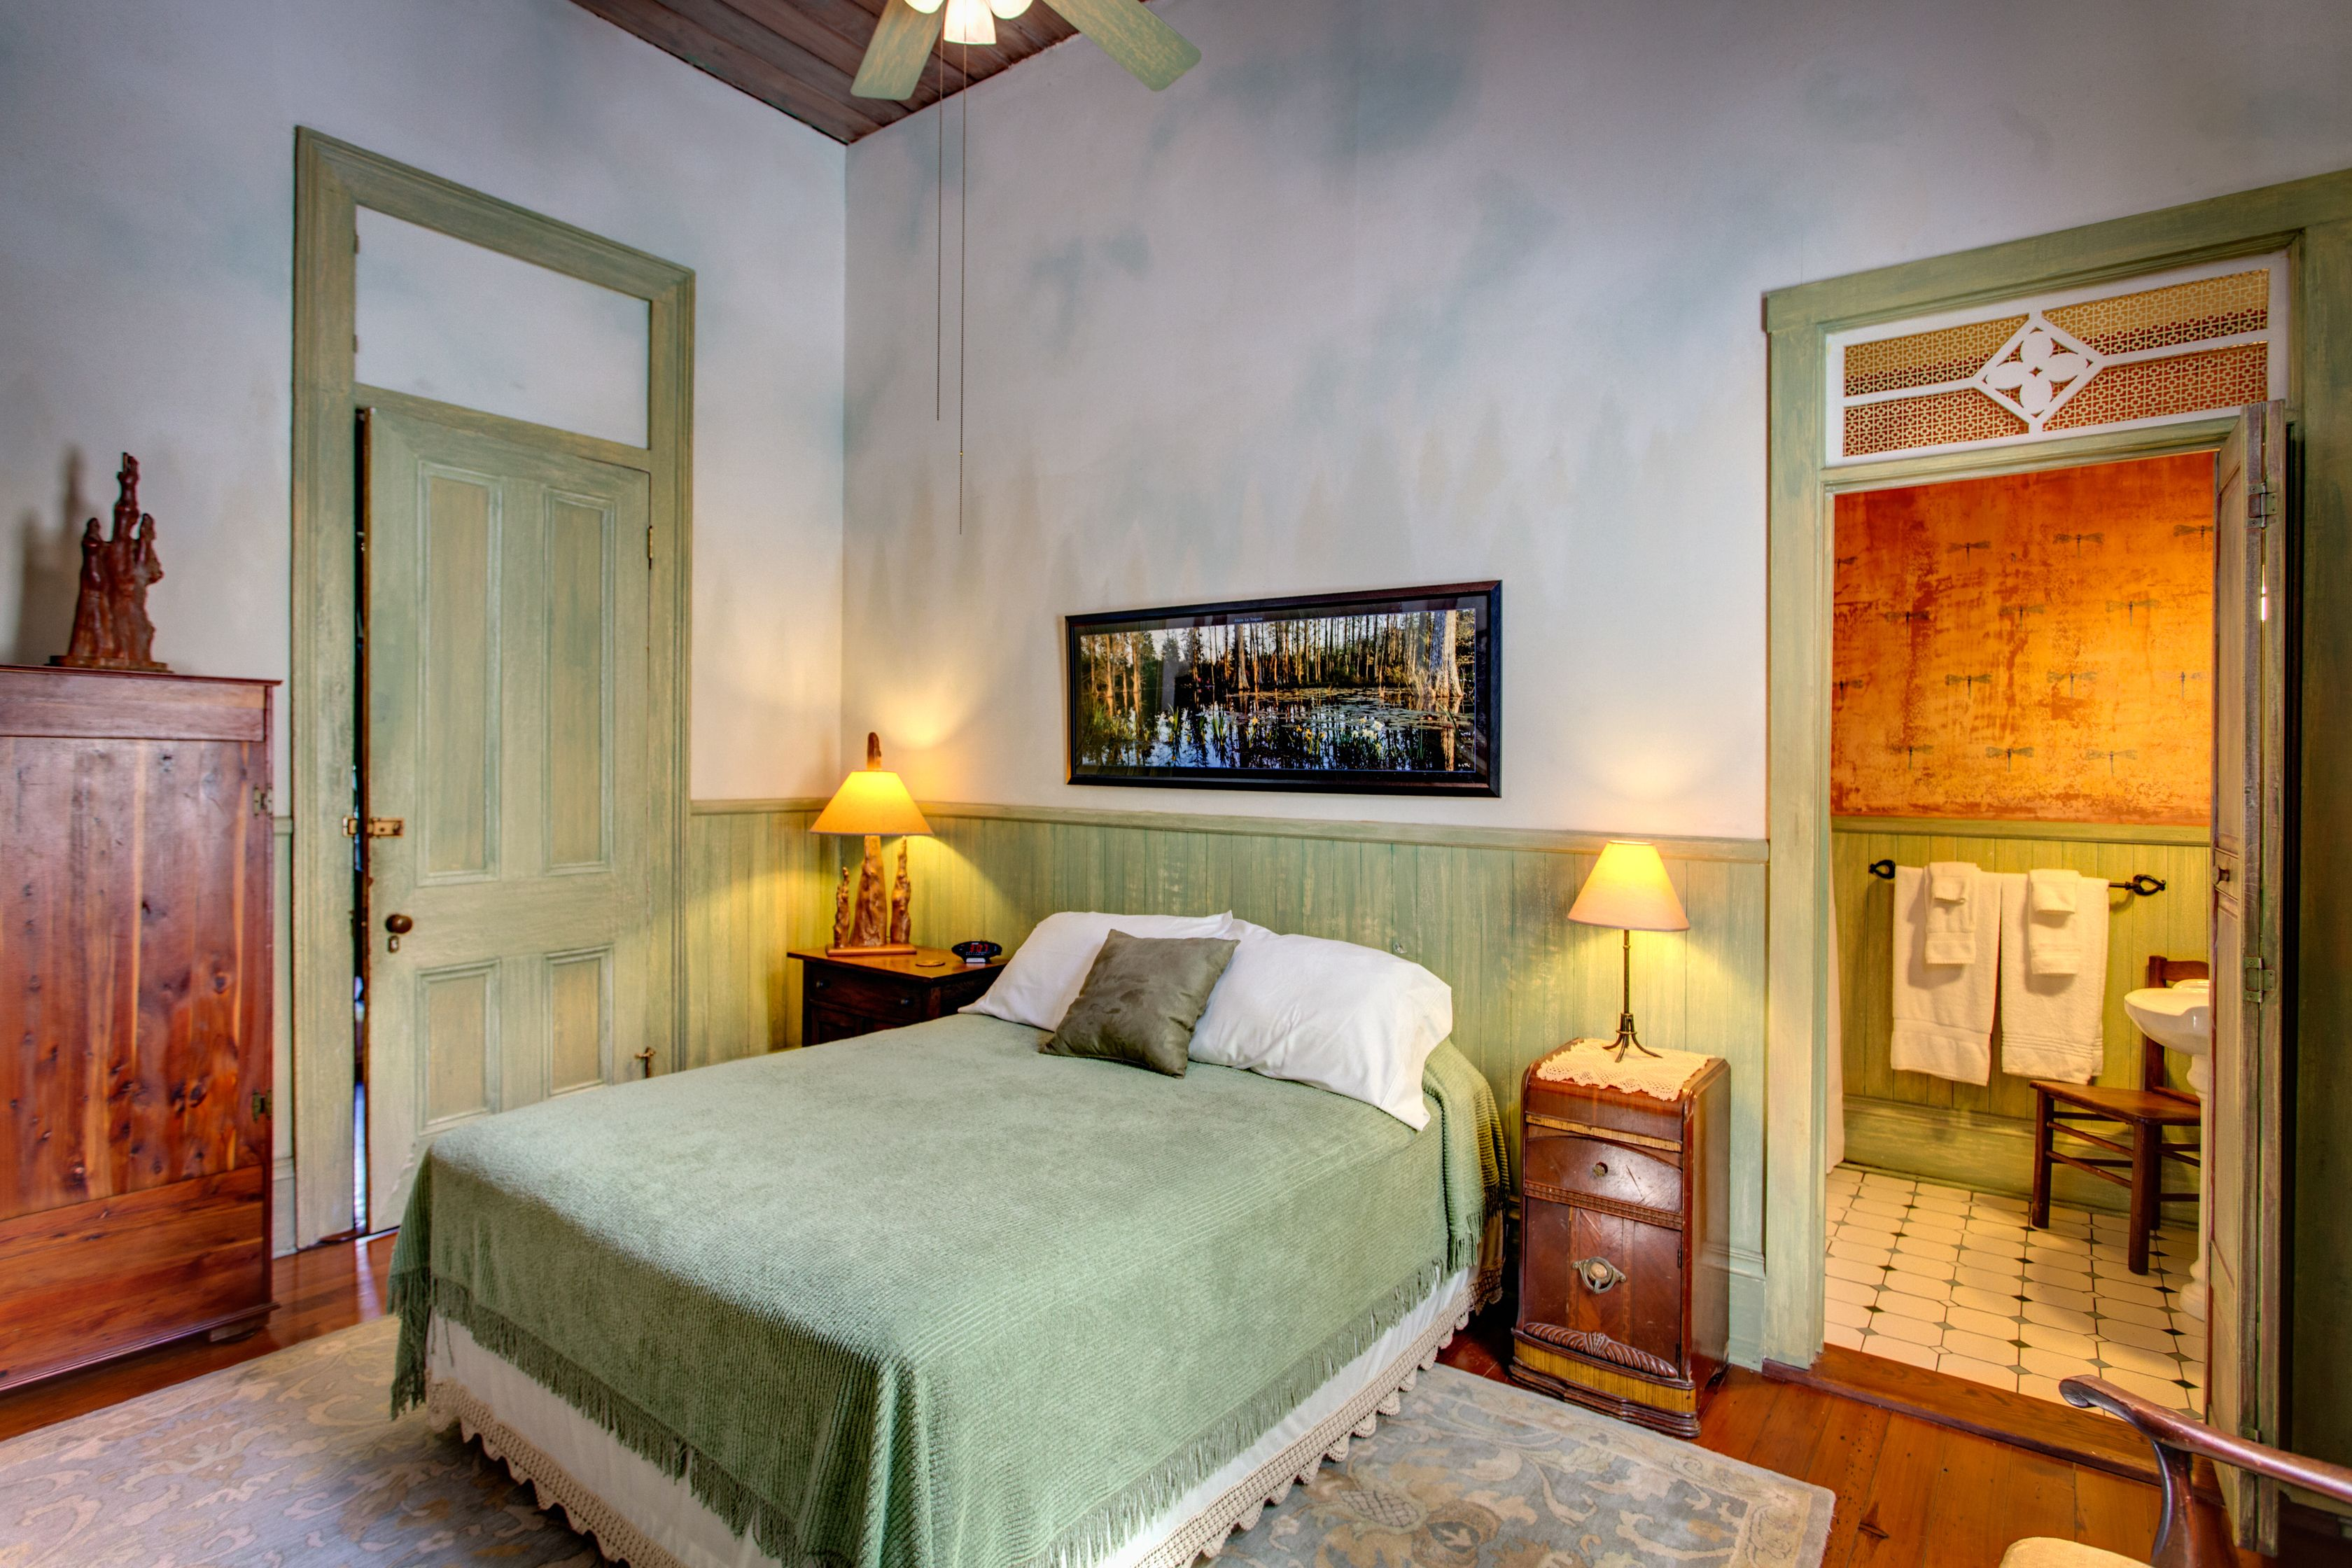 Auld Sweet Olive Bed and Breakfast, New Orleans Bed, Bed